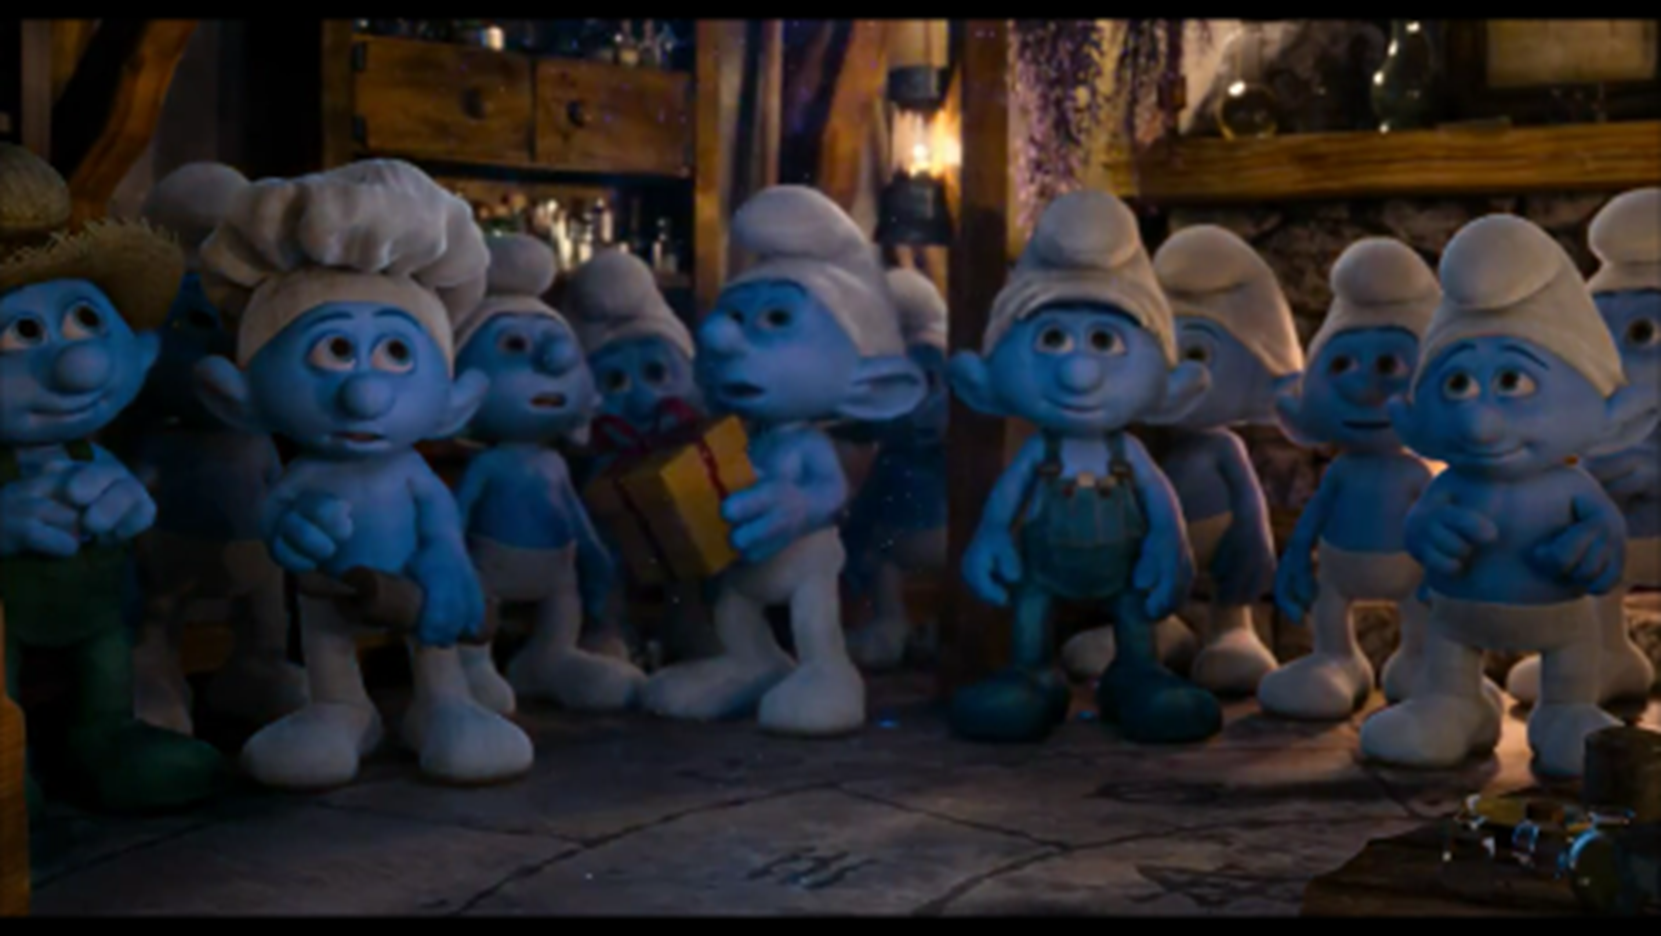 the smurfs 2 movie images the smurfs 2 hd wallpaper and background